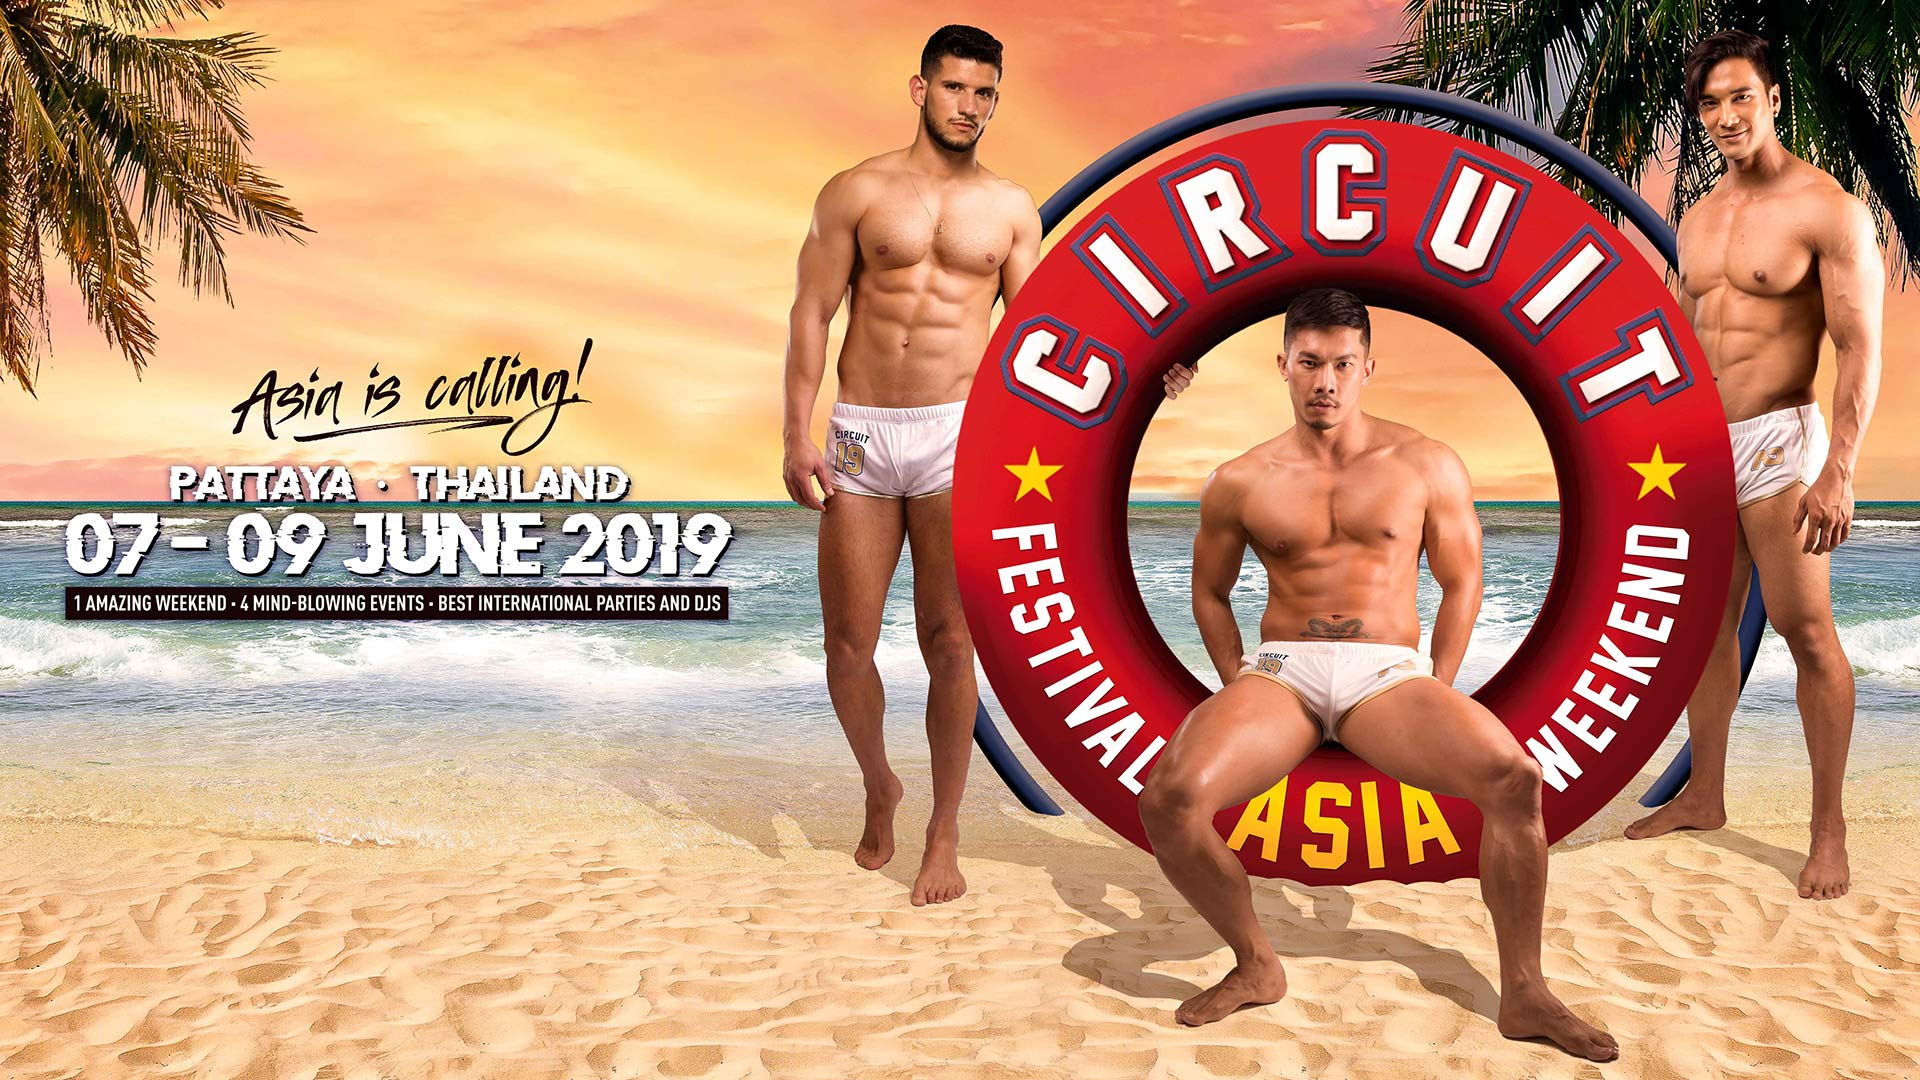 gay-event-asia-circuit